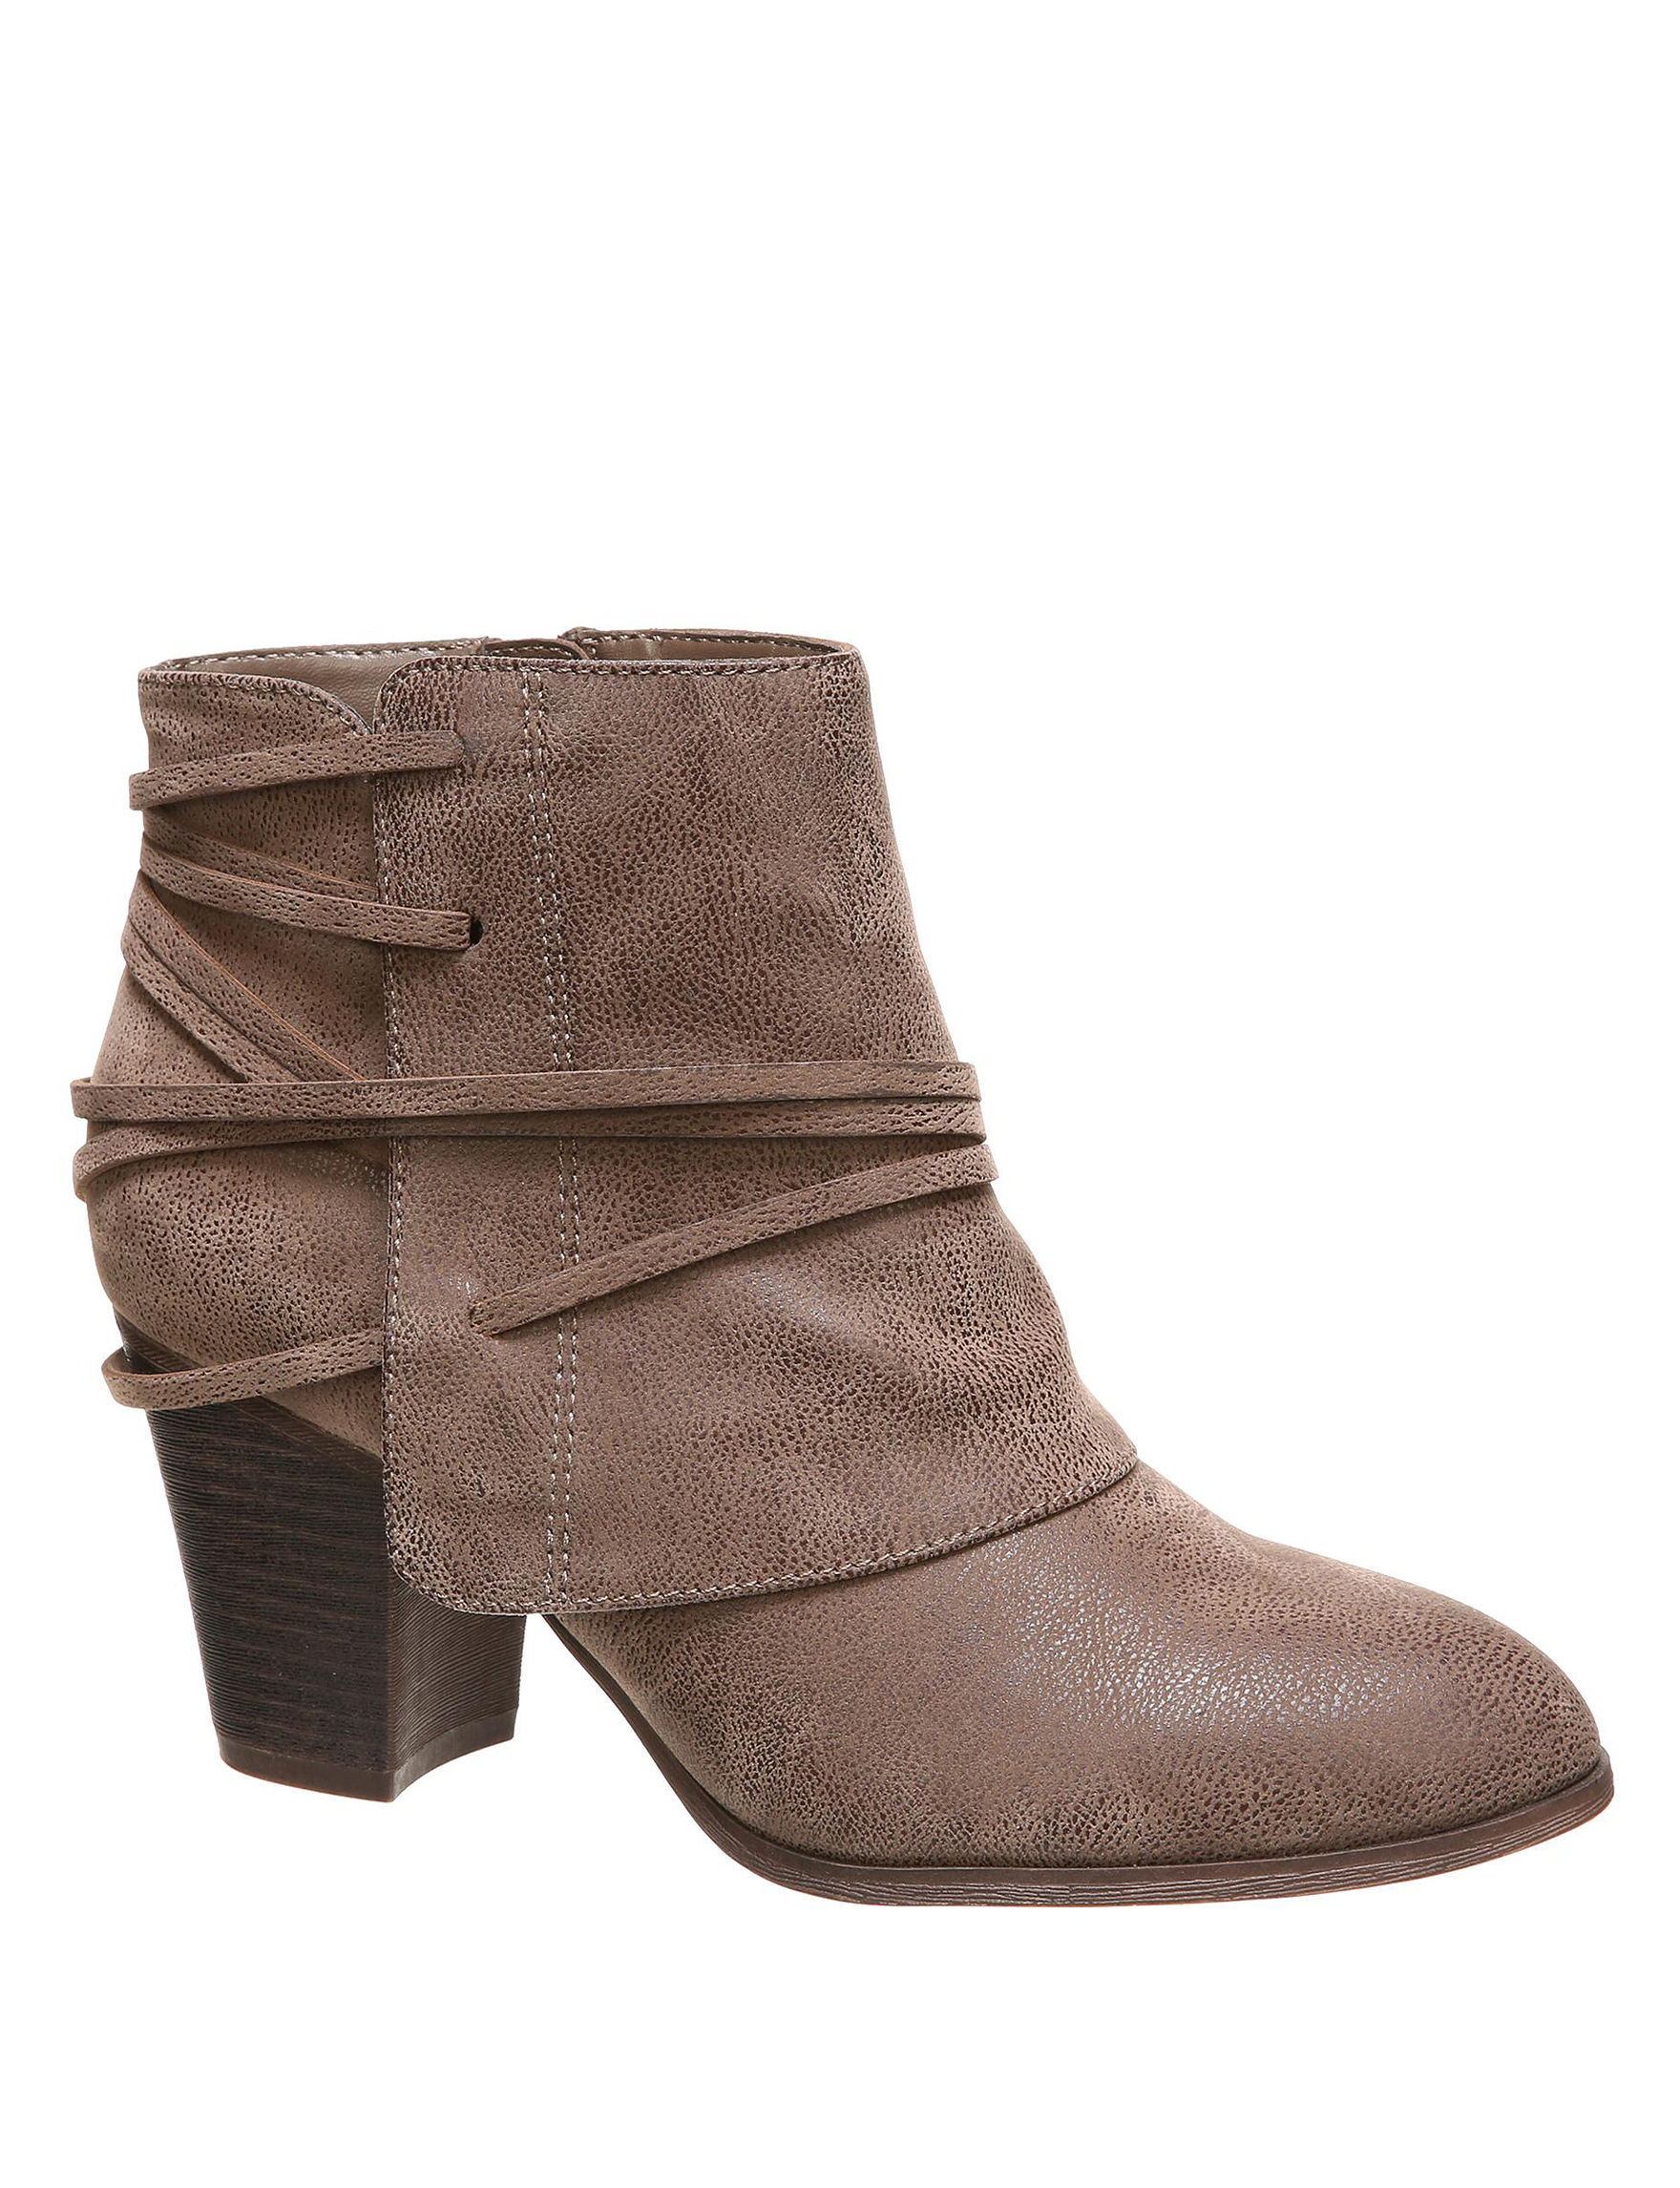 Fergalicious by Fergie Taupe Ankle Boots & Booties